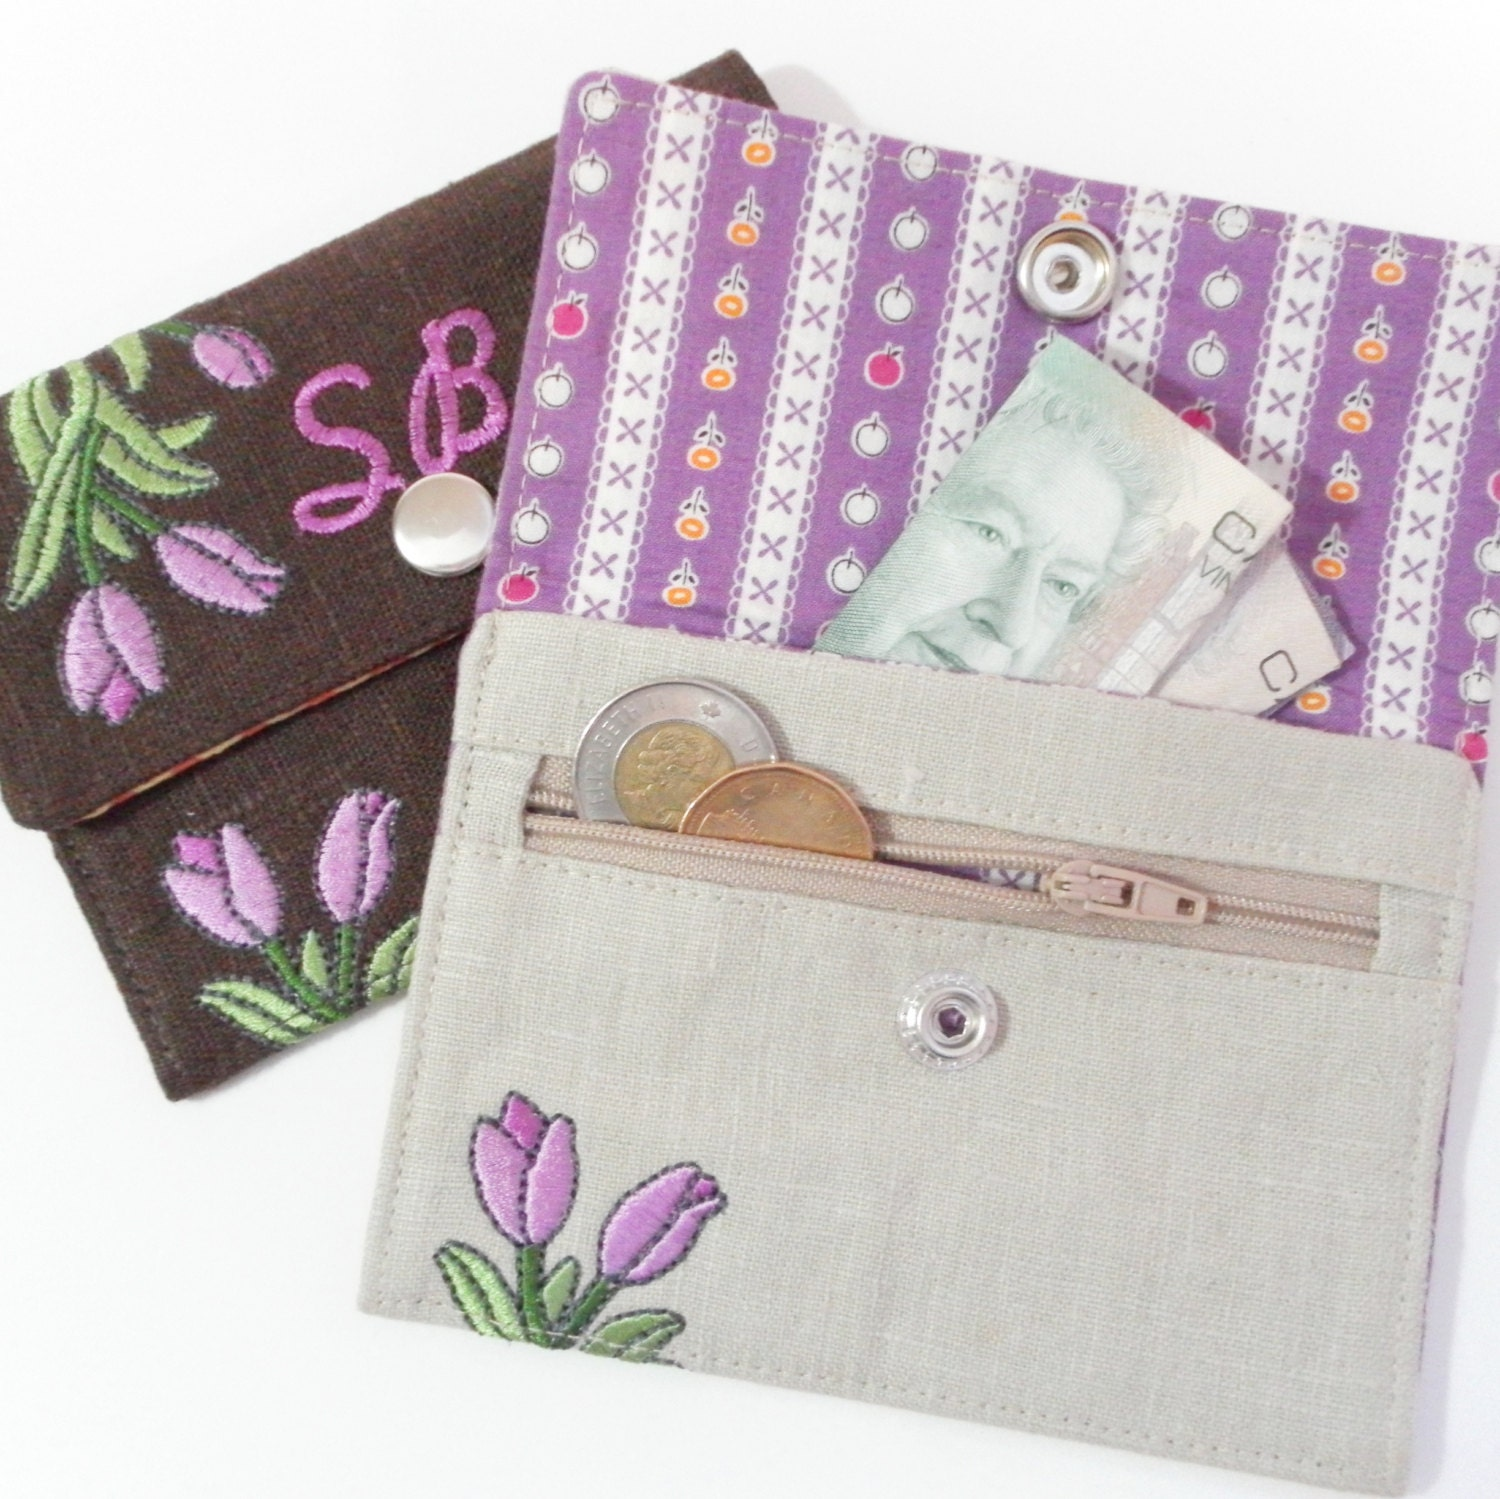 In-the-Hoop Wallets Machine Embroidery Designs sc071d and In-the-Hoop Wallet and Change Purse